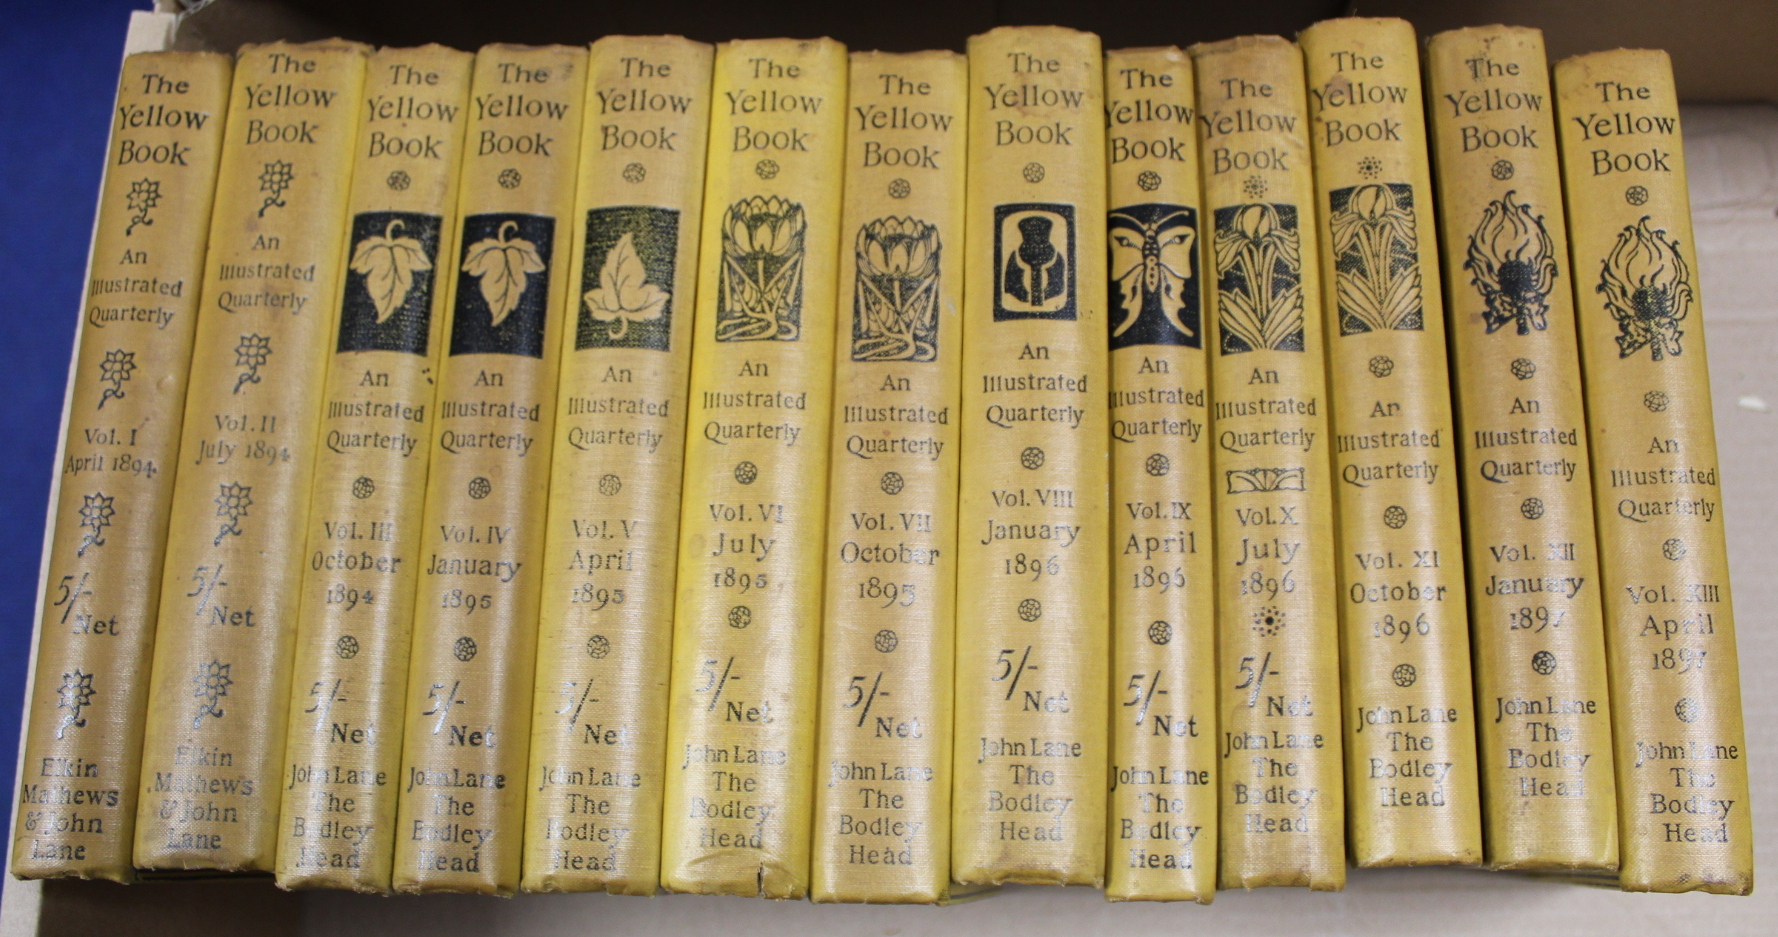 THE YELLOW BOOK.An Illustrated Quarterly. A set of 13 vols., many fine illus. Small quarto. - Image 45 of 45